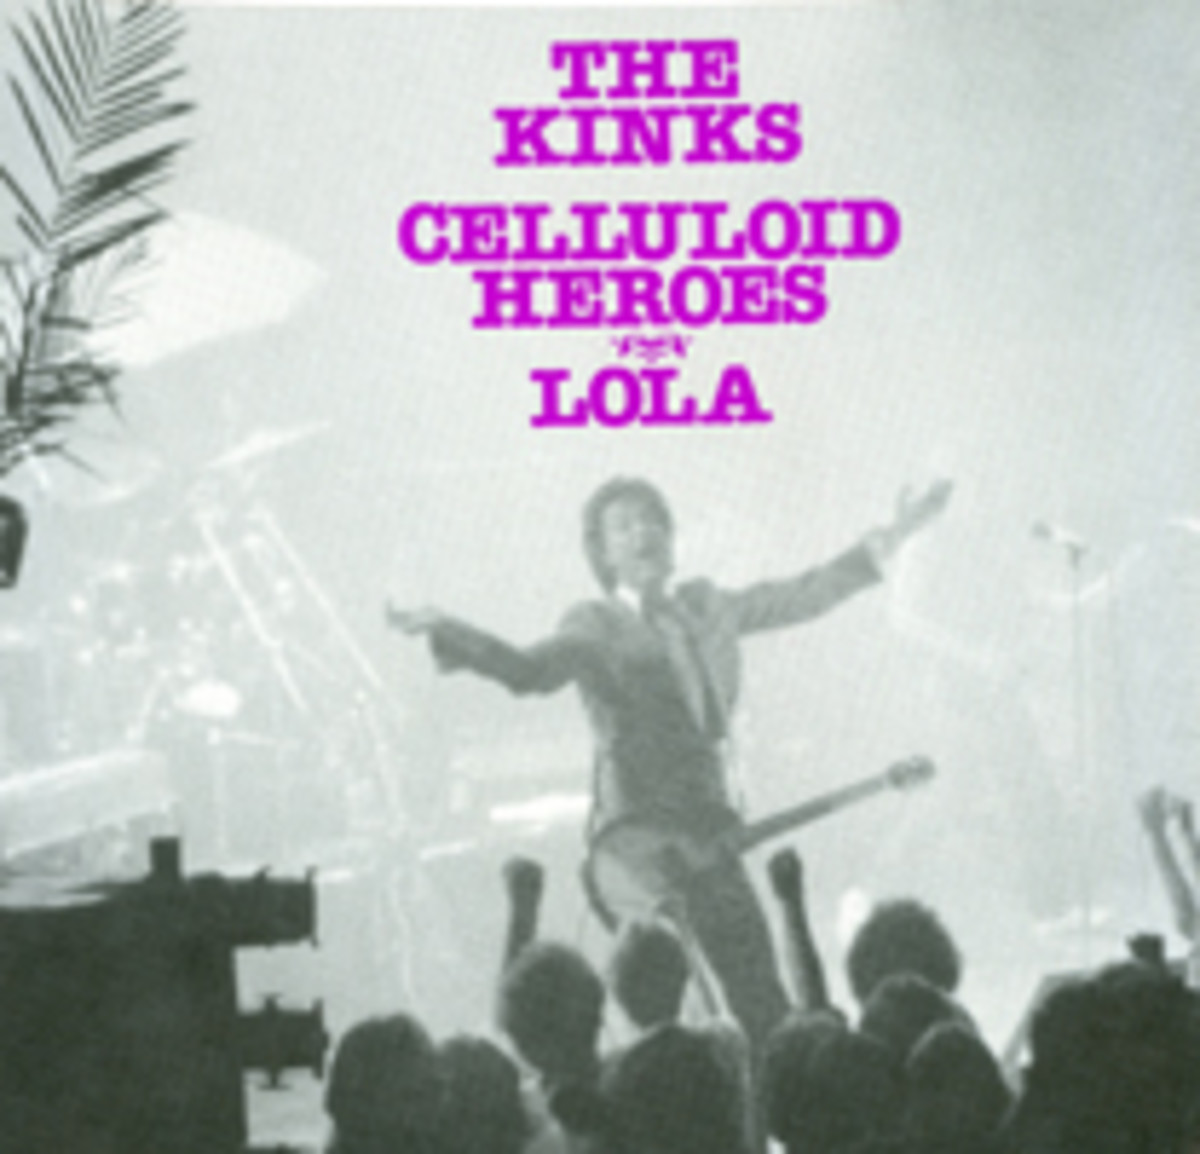 The Kinks Lola Celluloid Heroes picture sleeve